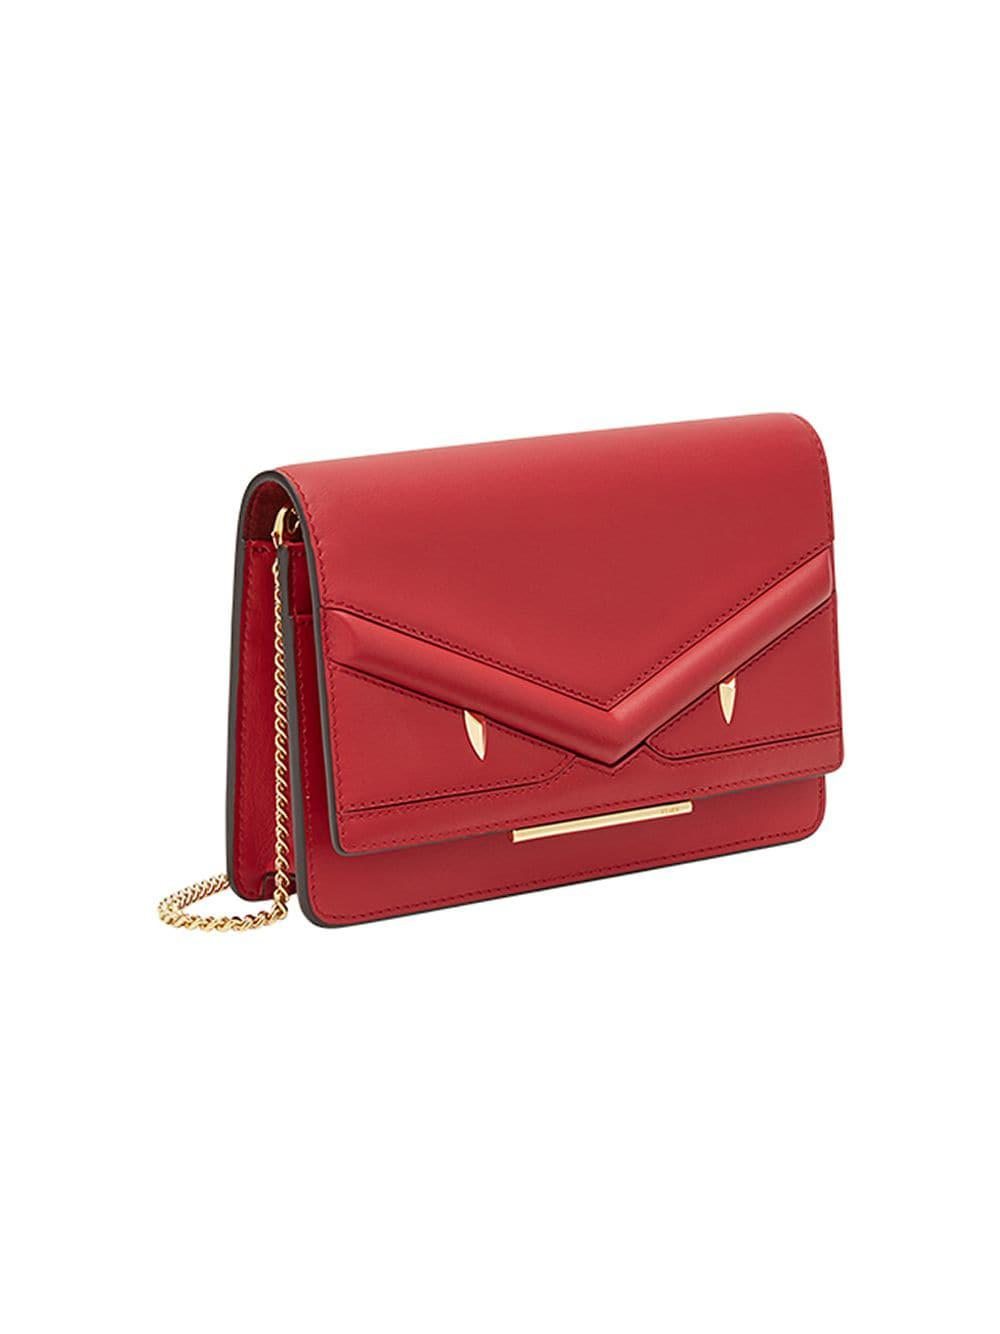 dd91cbc6258f Fendi Wallet On Chain Mini Bag in Red - Lyst